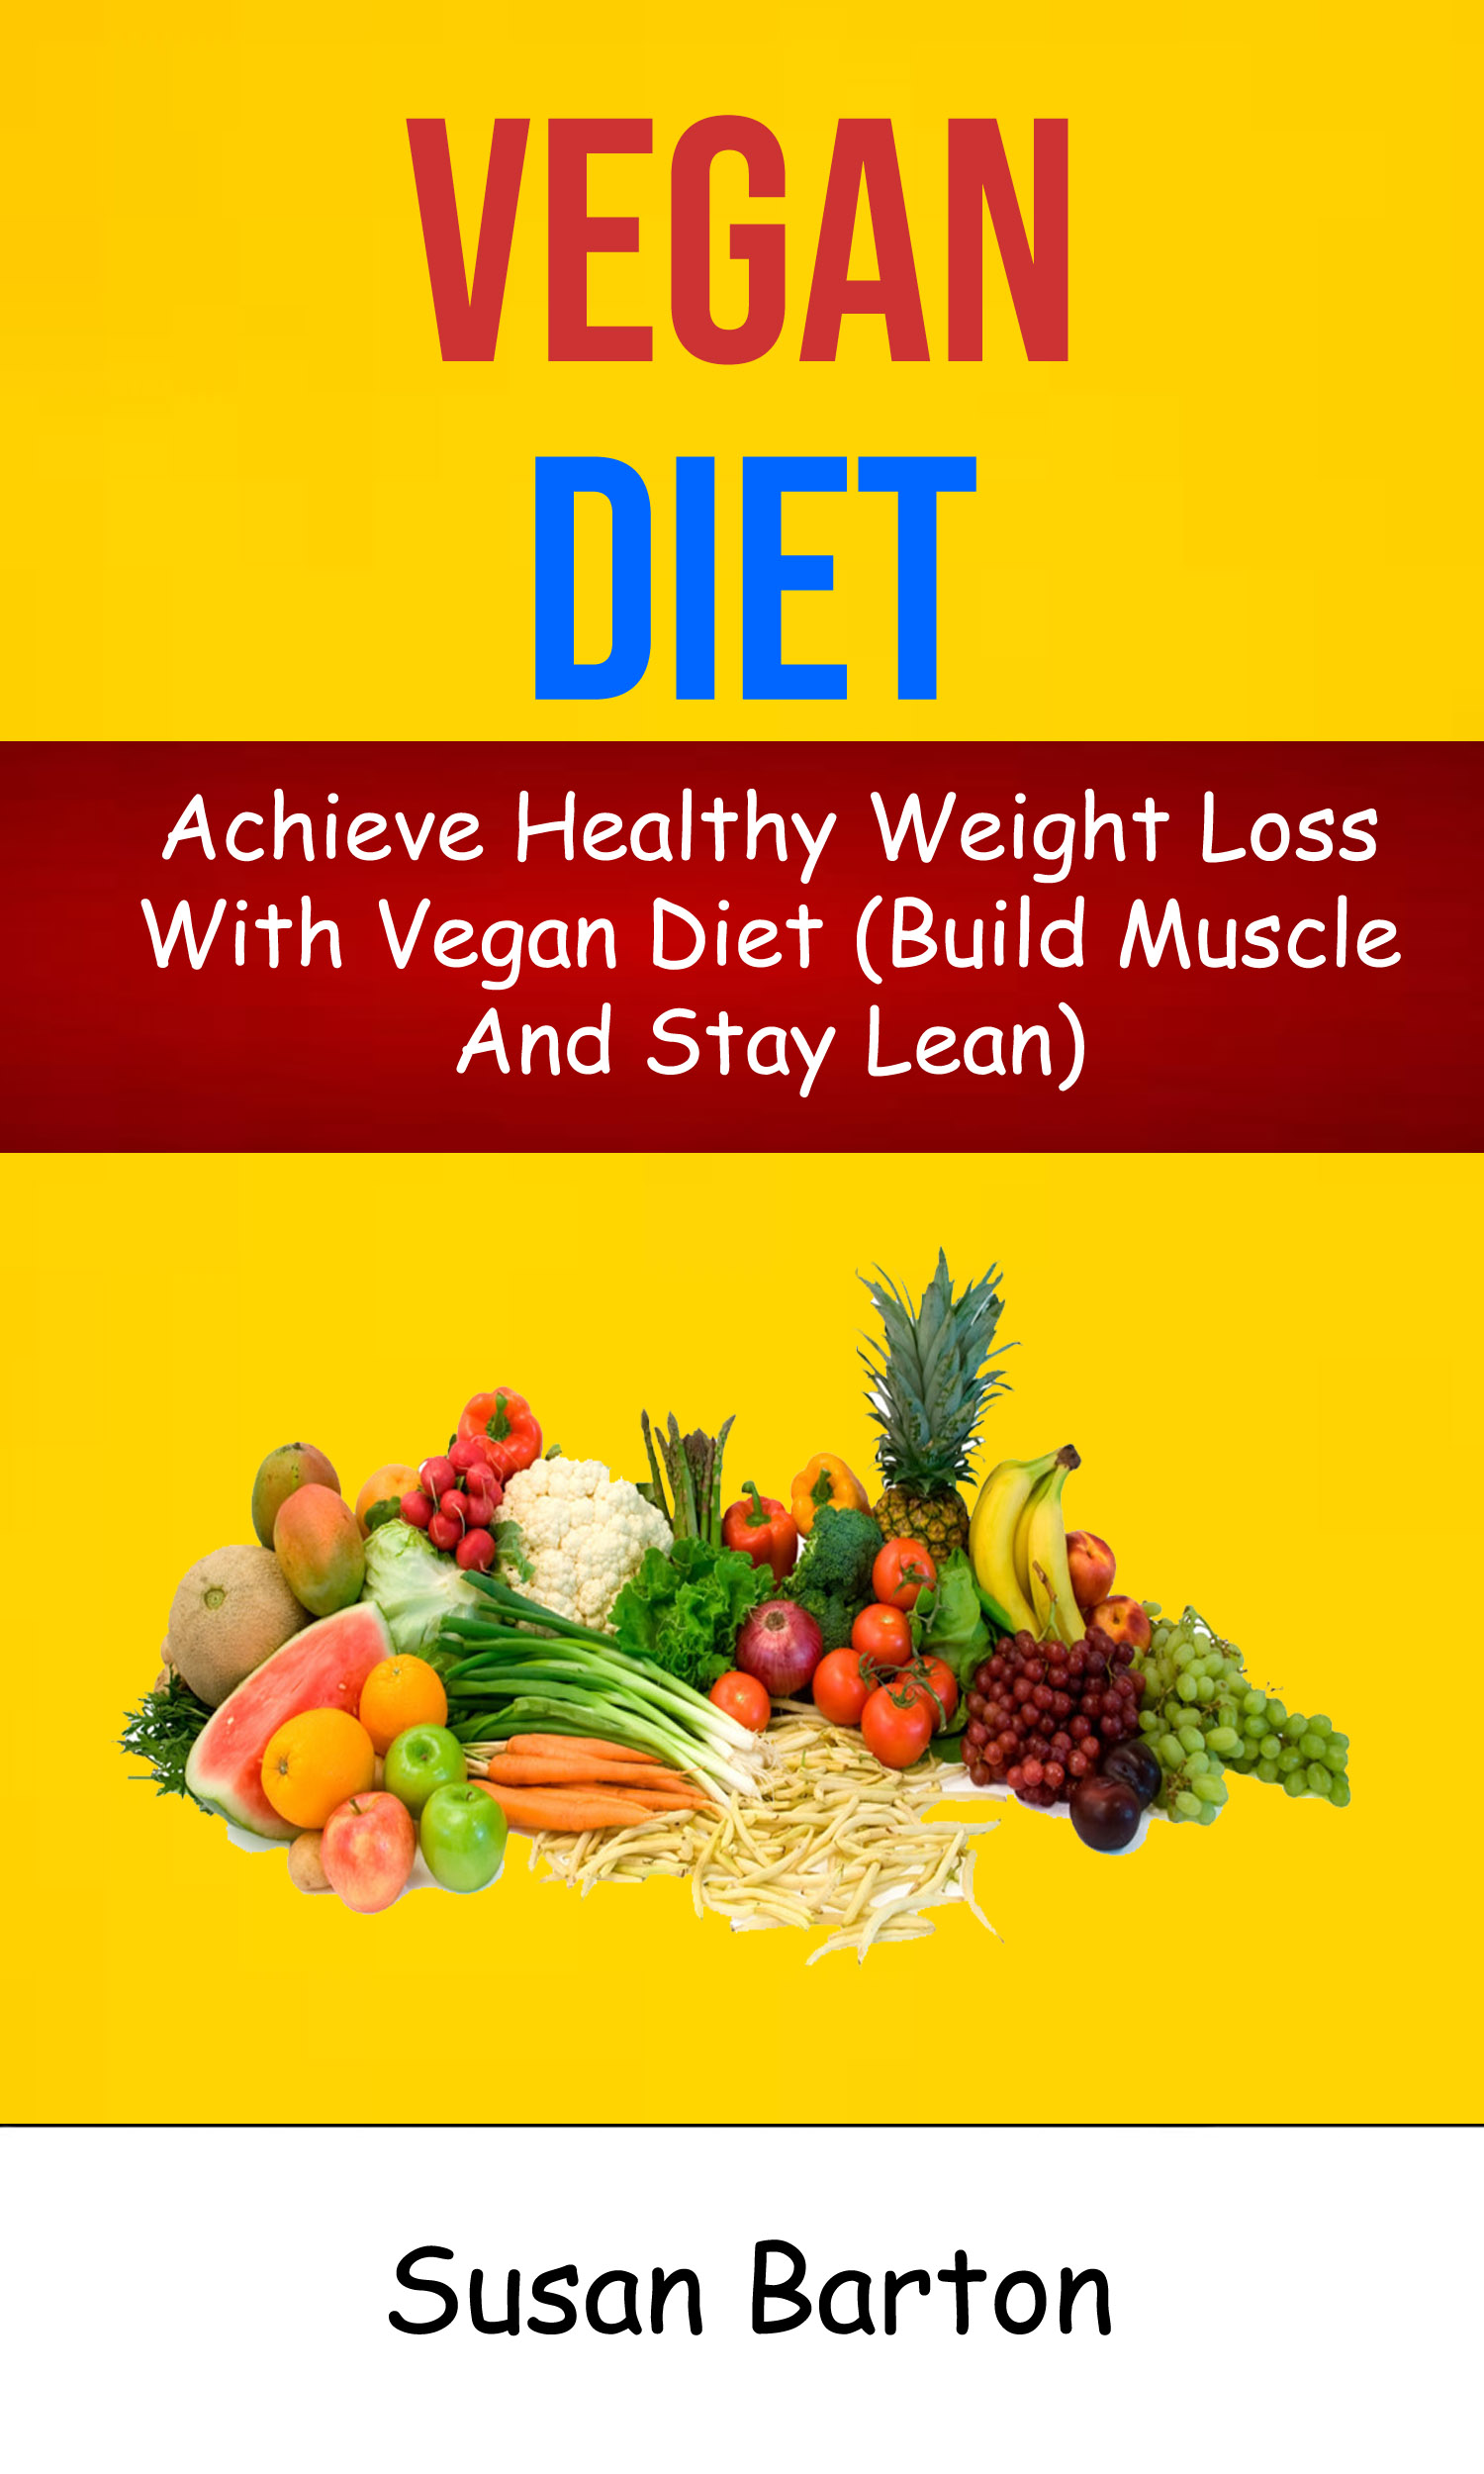 Vegan diet: achieve healthy weight loss with vegan diet (build muscle and stay lean)